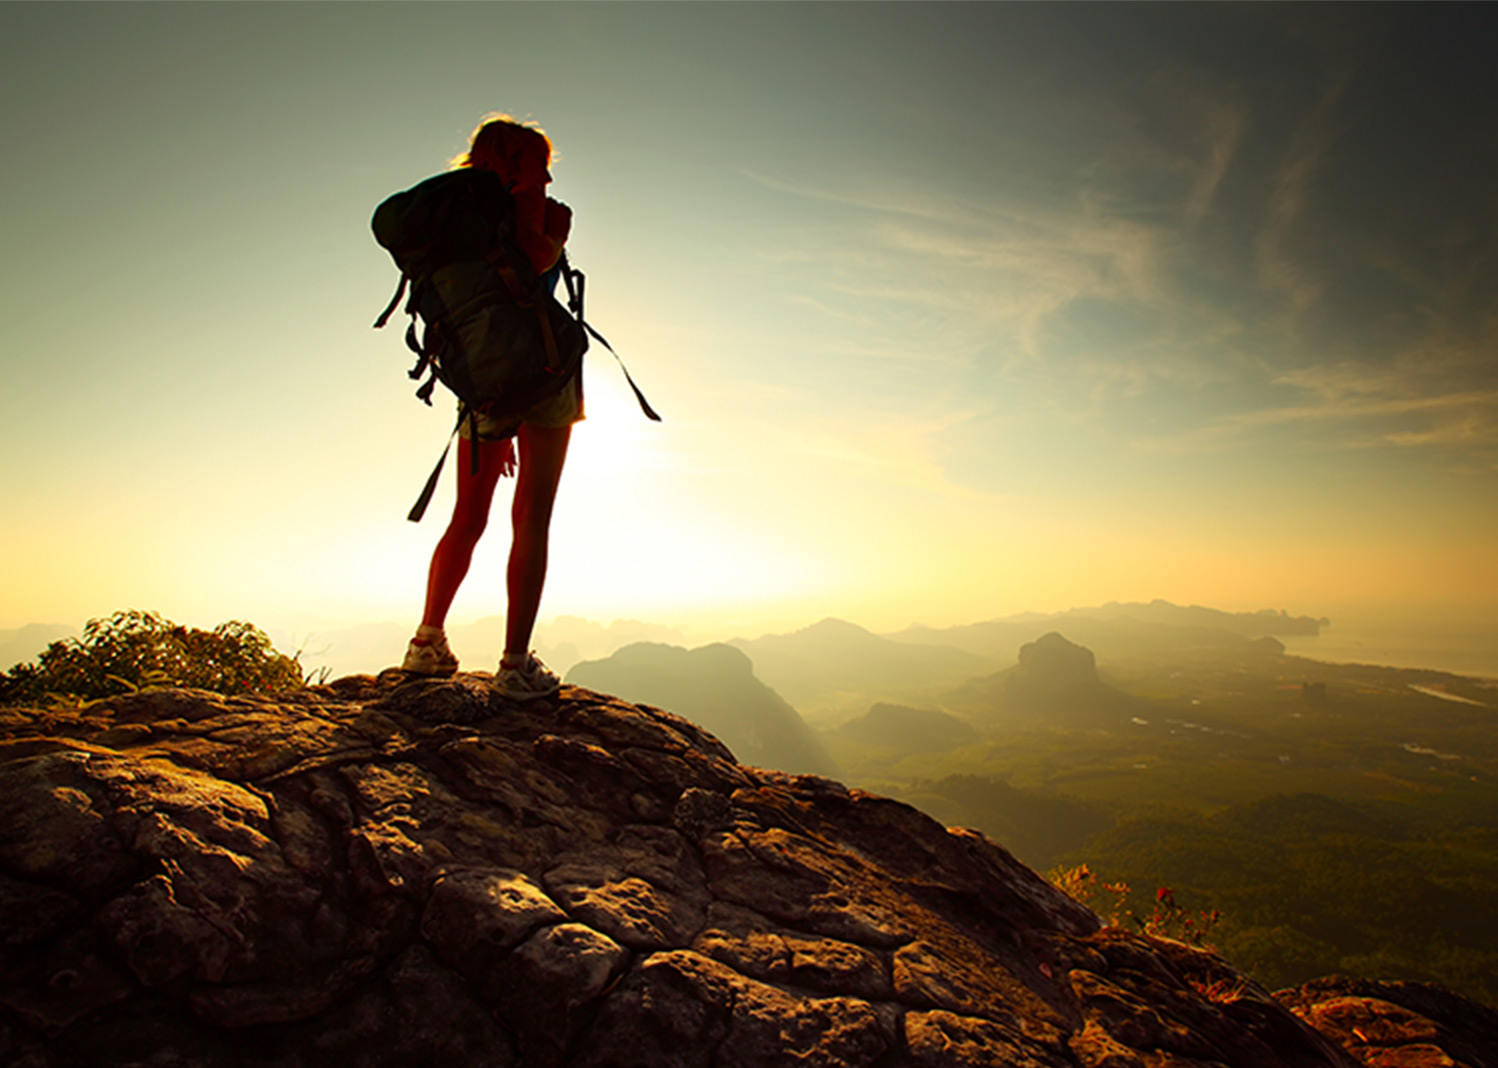 Marriott promo of a woman standing the edge of a cliff over looking the mountains.